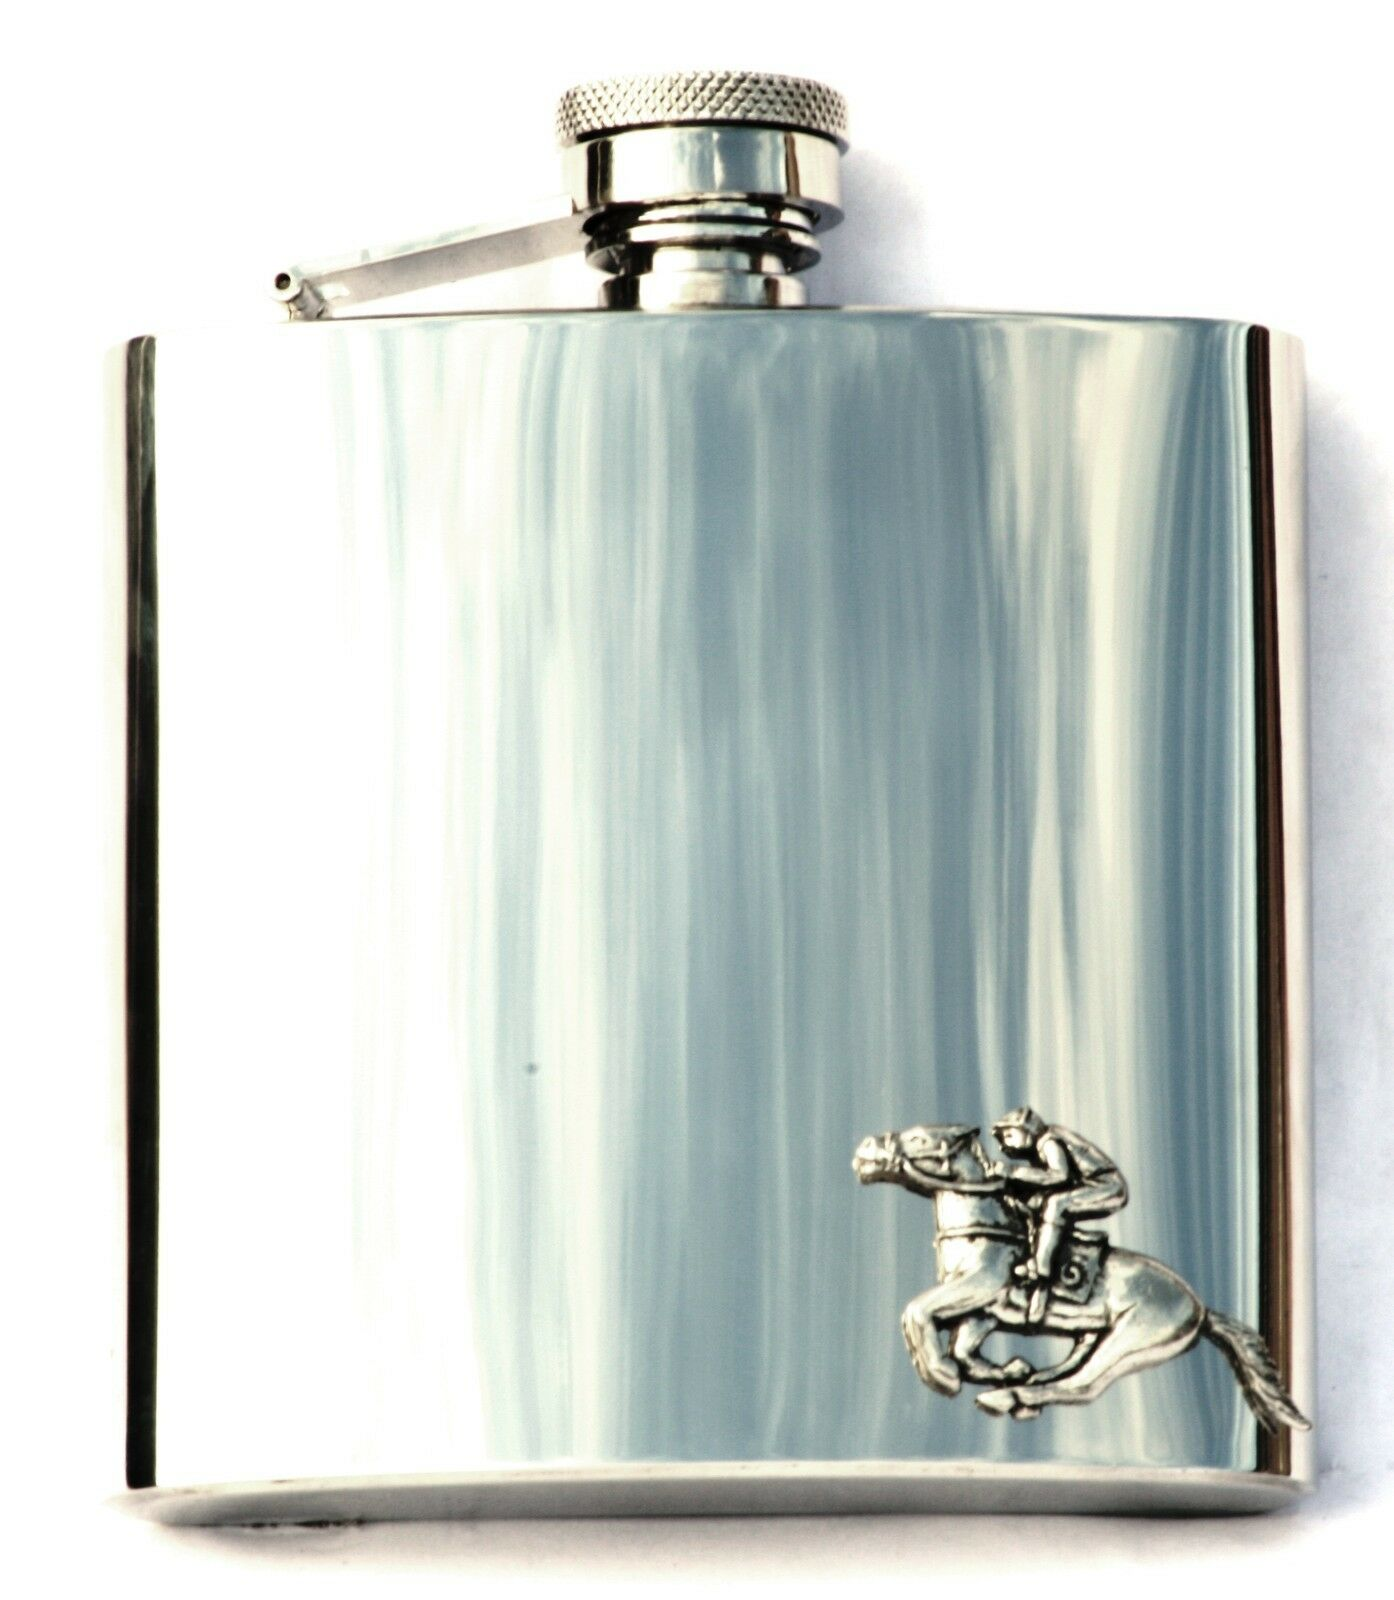 Horse Hurdle Racing Hip Flask Equestrian Riding Hunter Gift FREE ENGRAVING